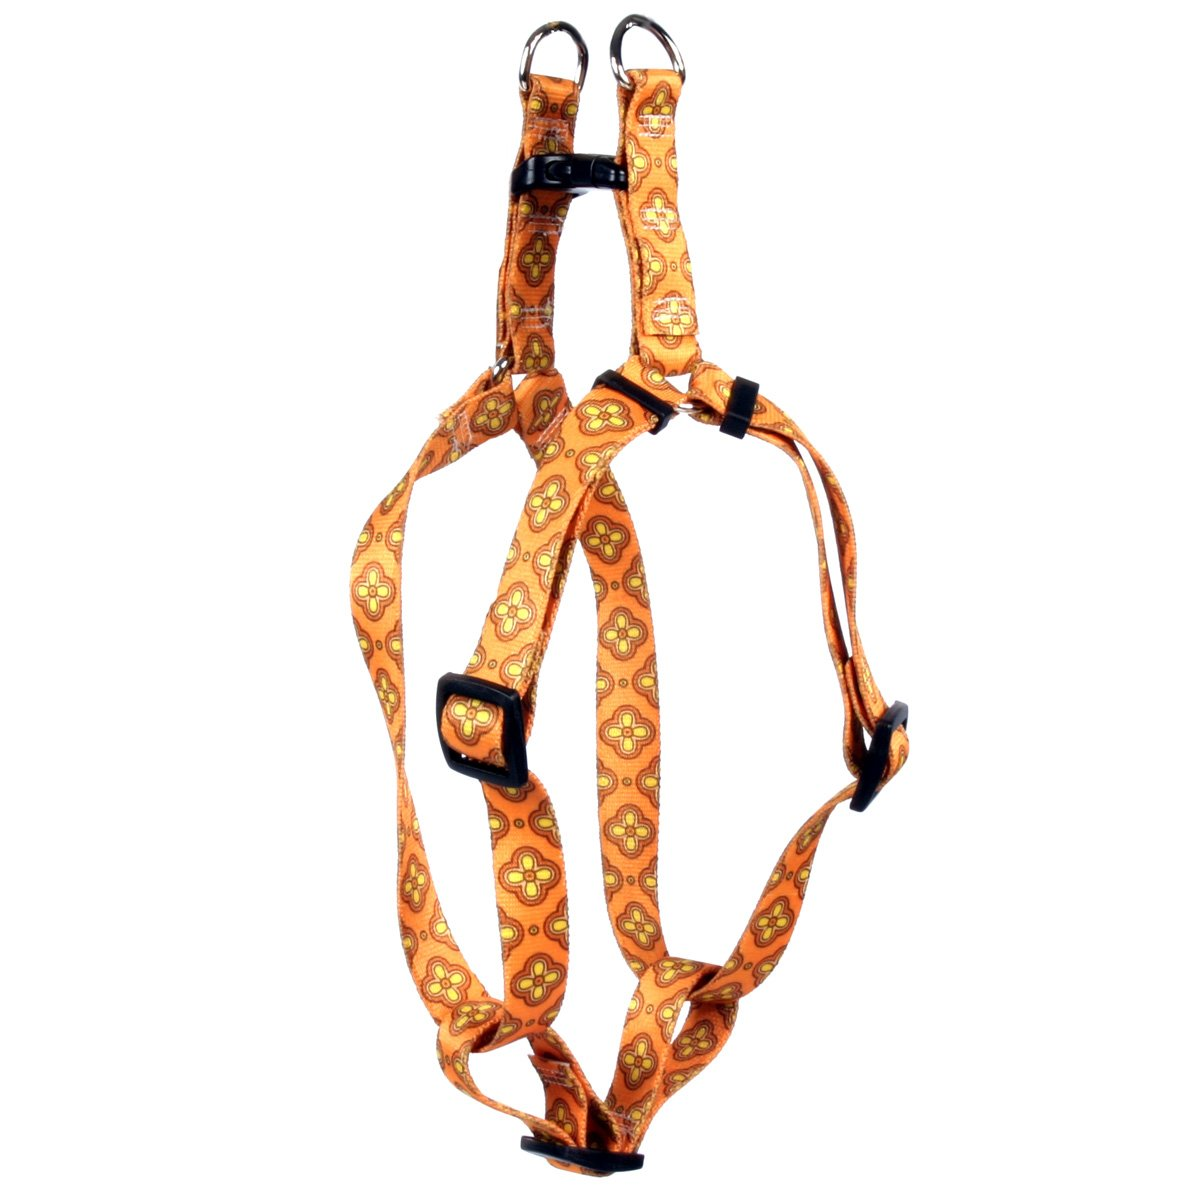 Yellow Dog Design Cleo Orange Step-in Dog Harness 3/4'' Wide and Fits Chest Circumference of 15 to 25'', Medium